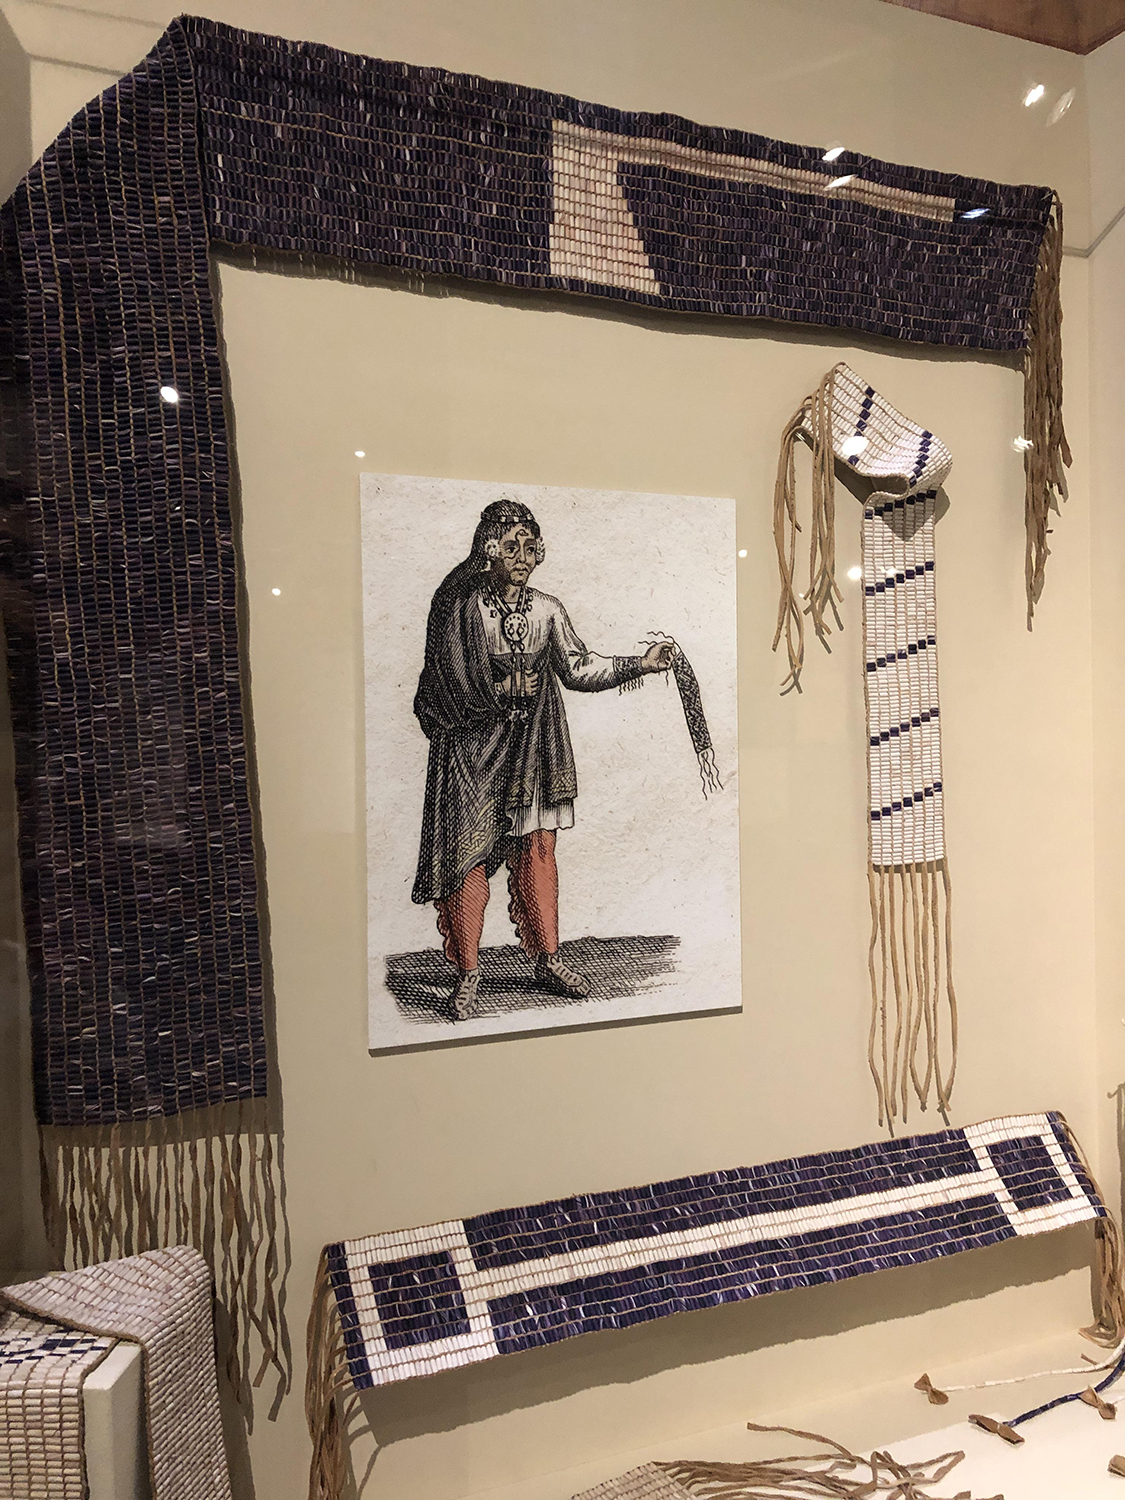 Discover how wampum belts documented important events, stories, wars, and agreements between American Indian nations and their friends and adversaries.